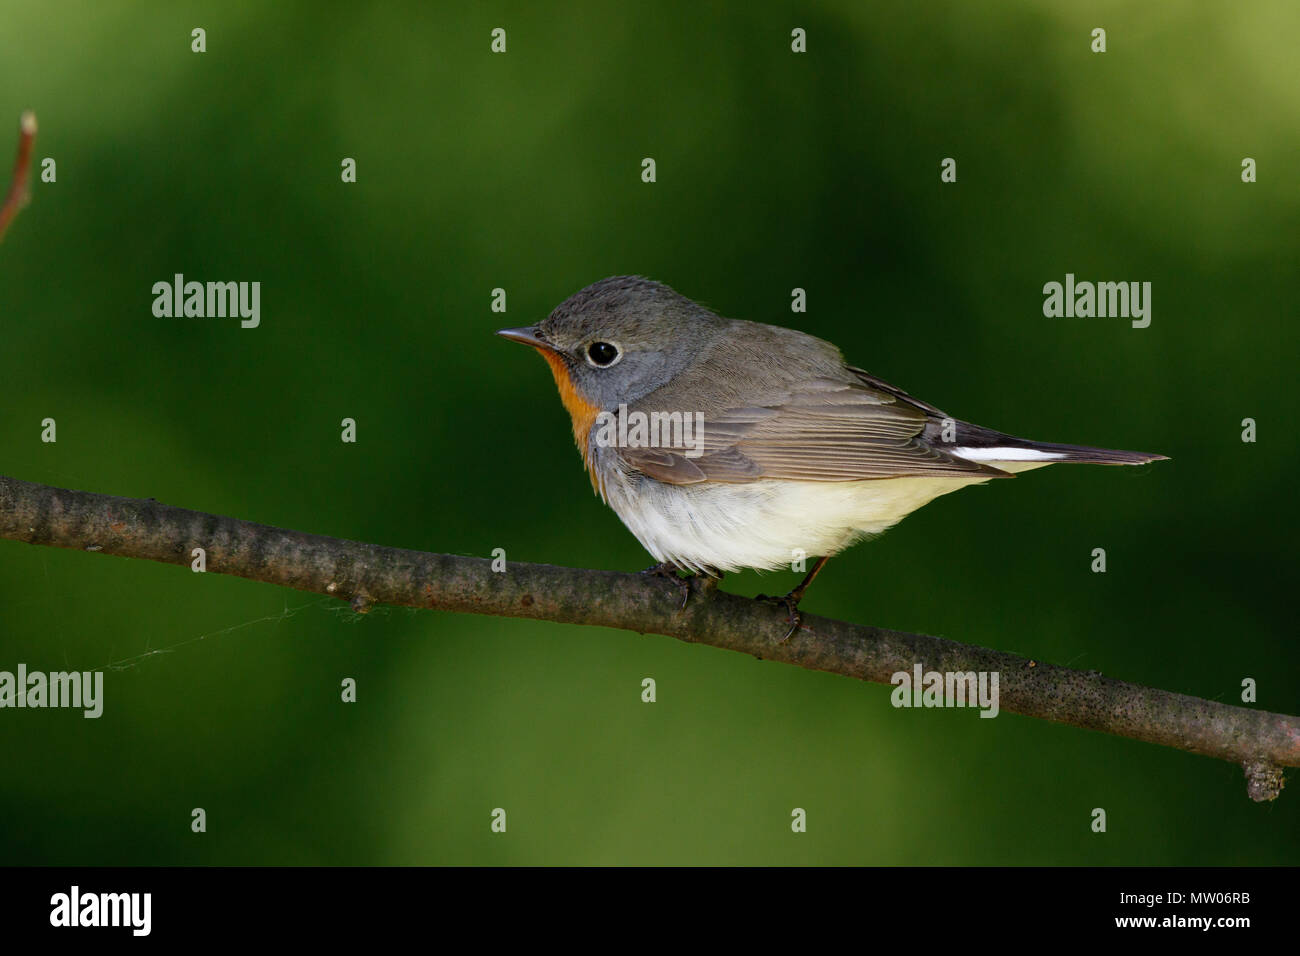 Red-breasted Flycatcher (Ficedula parva). male. Russia,  Moscow. - Stock Image